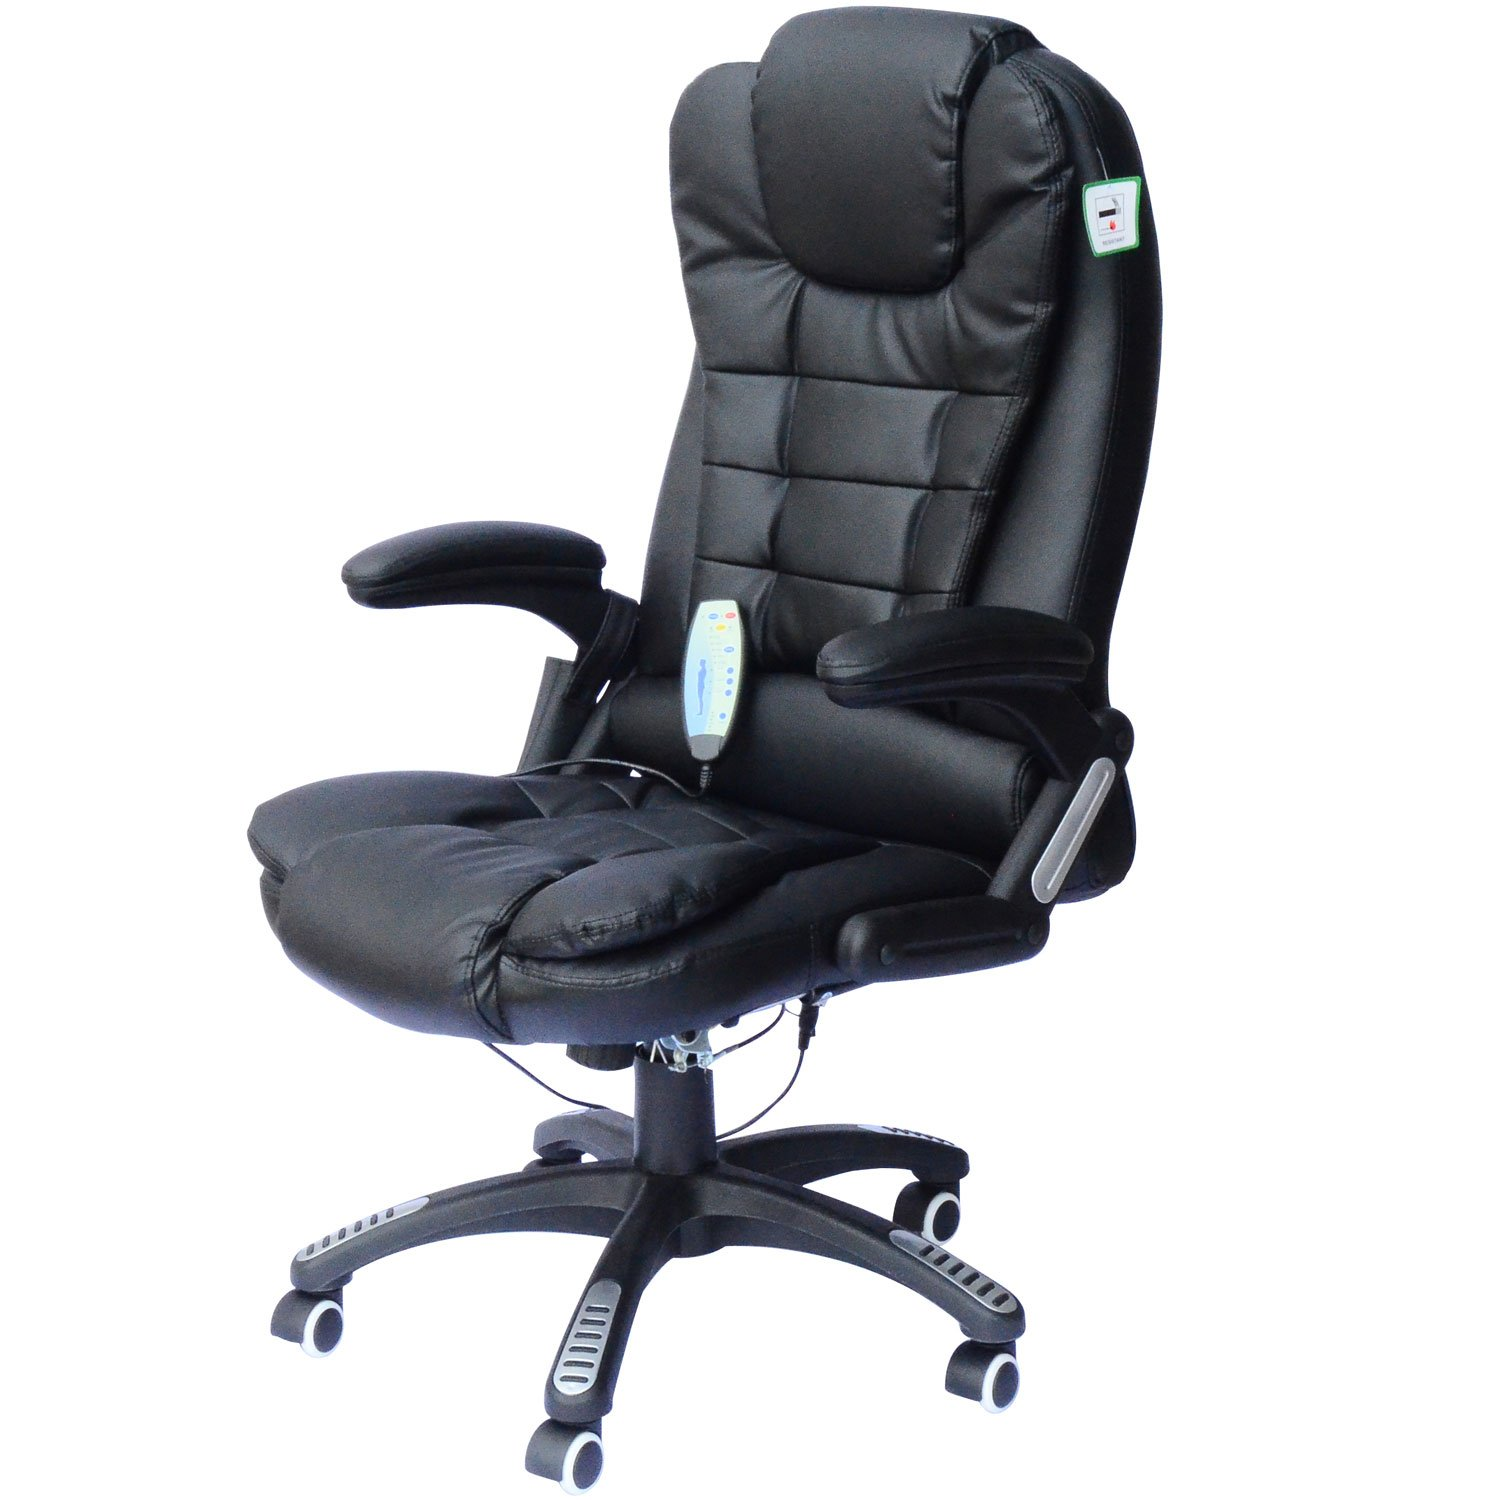 the latest 8bcaf e628d HomCom High-Back Executive Ergonomic PU Leather Heated Vibrating Massage  Office Chair - Black